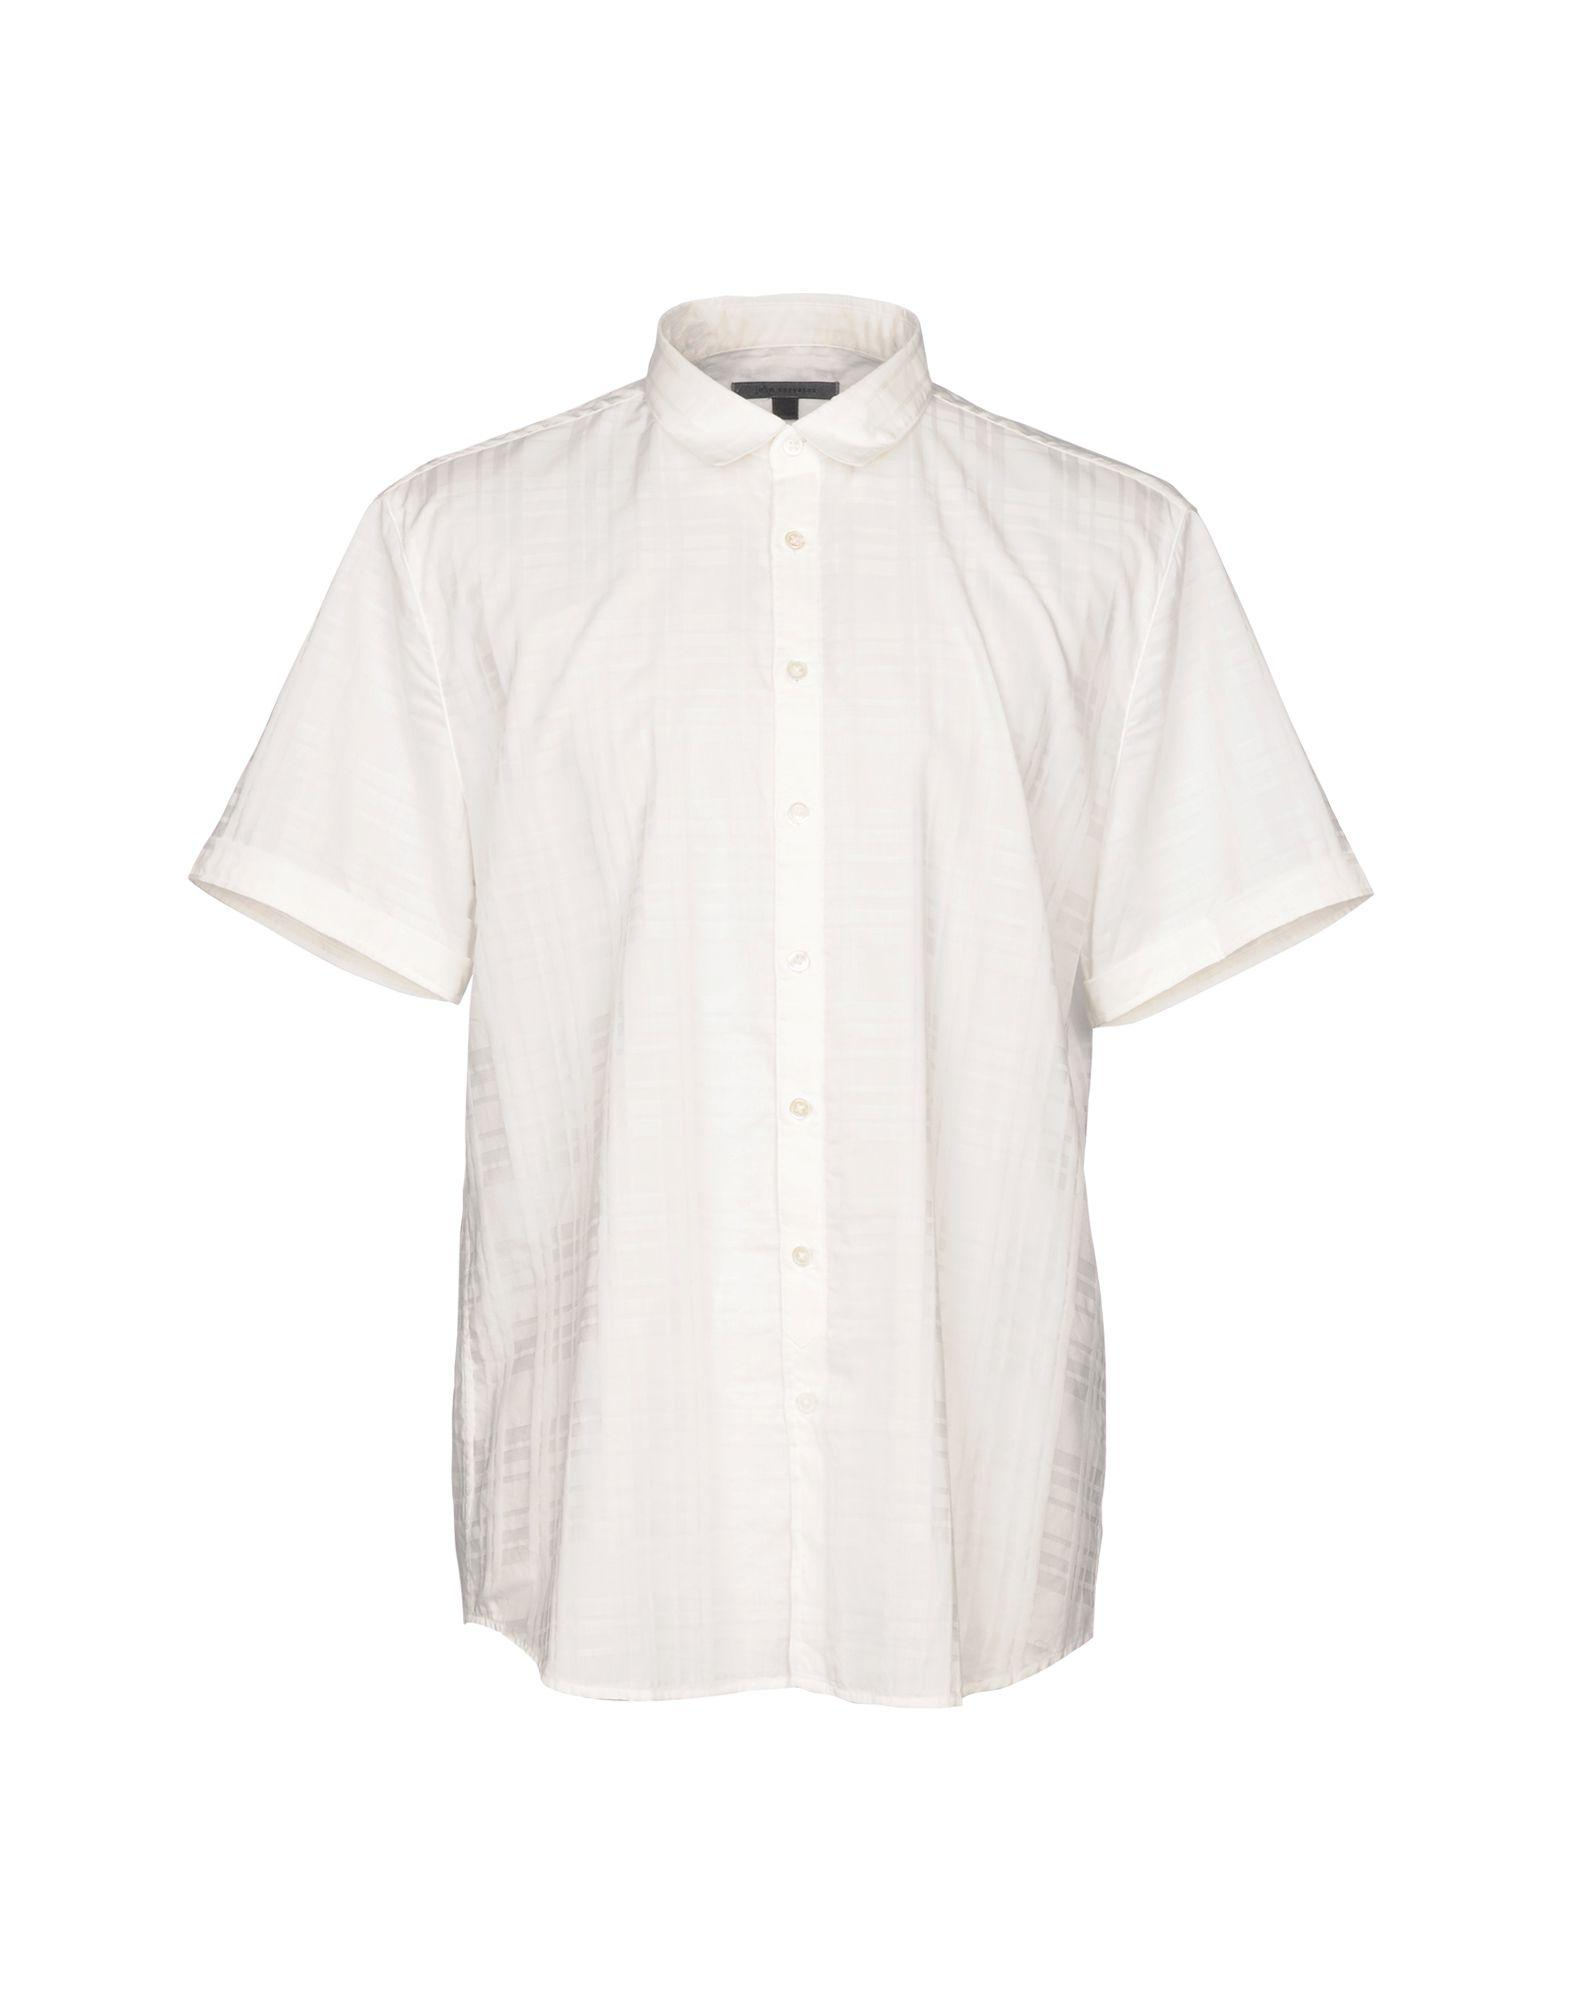 John Varvatos Shirts In White